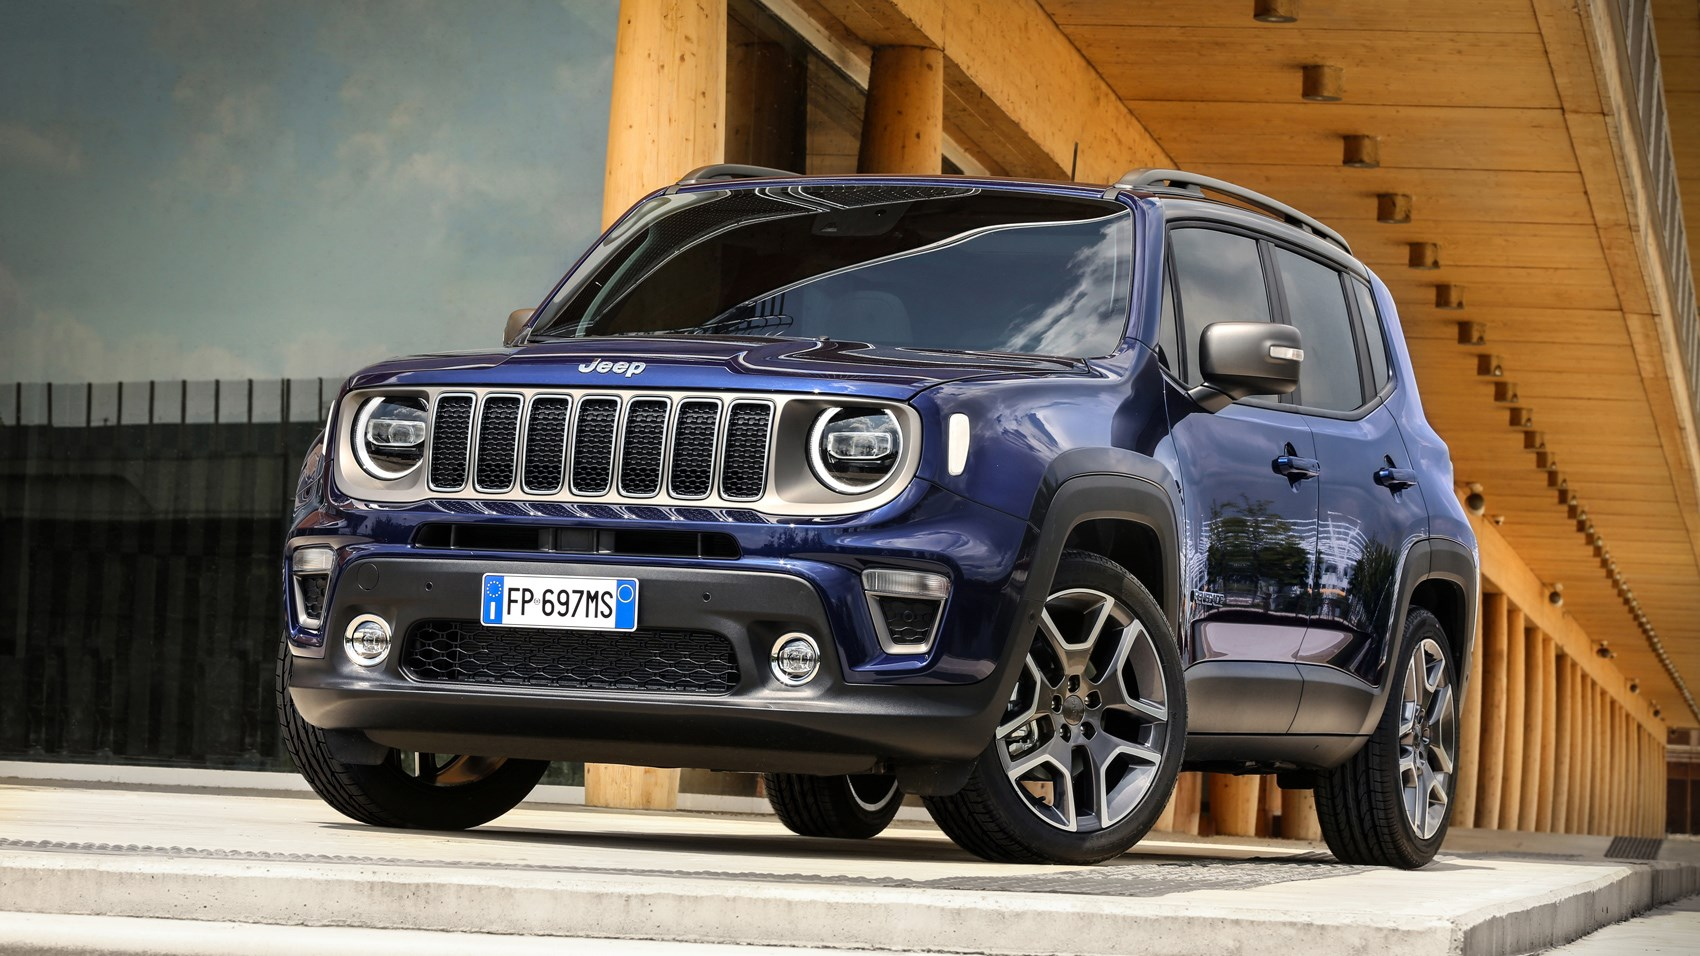 2020 Jeep Renegade Hybrid Debut Details >> Jeep Renegade 2018 Suv Review Chunky Charm Car Magazine